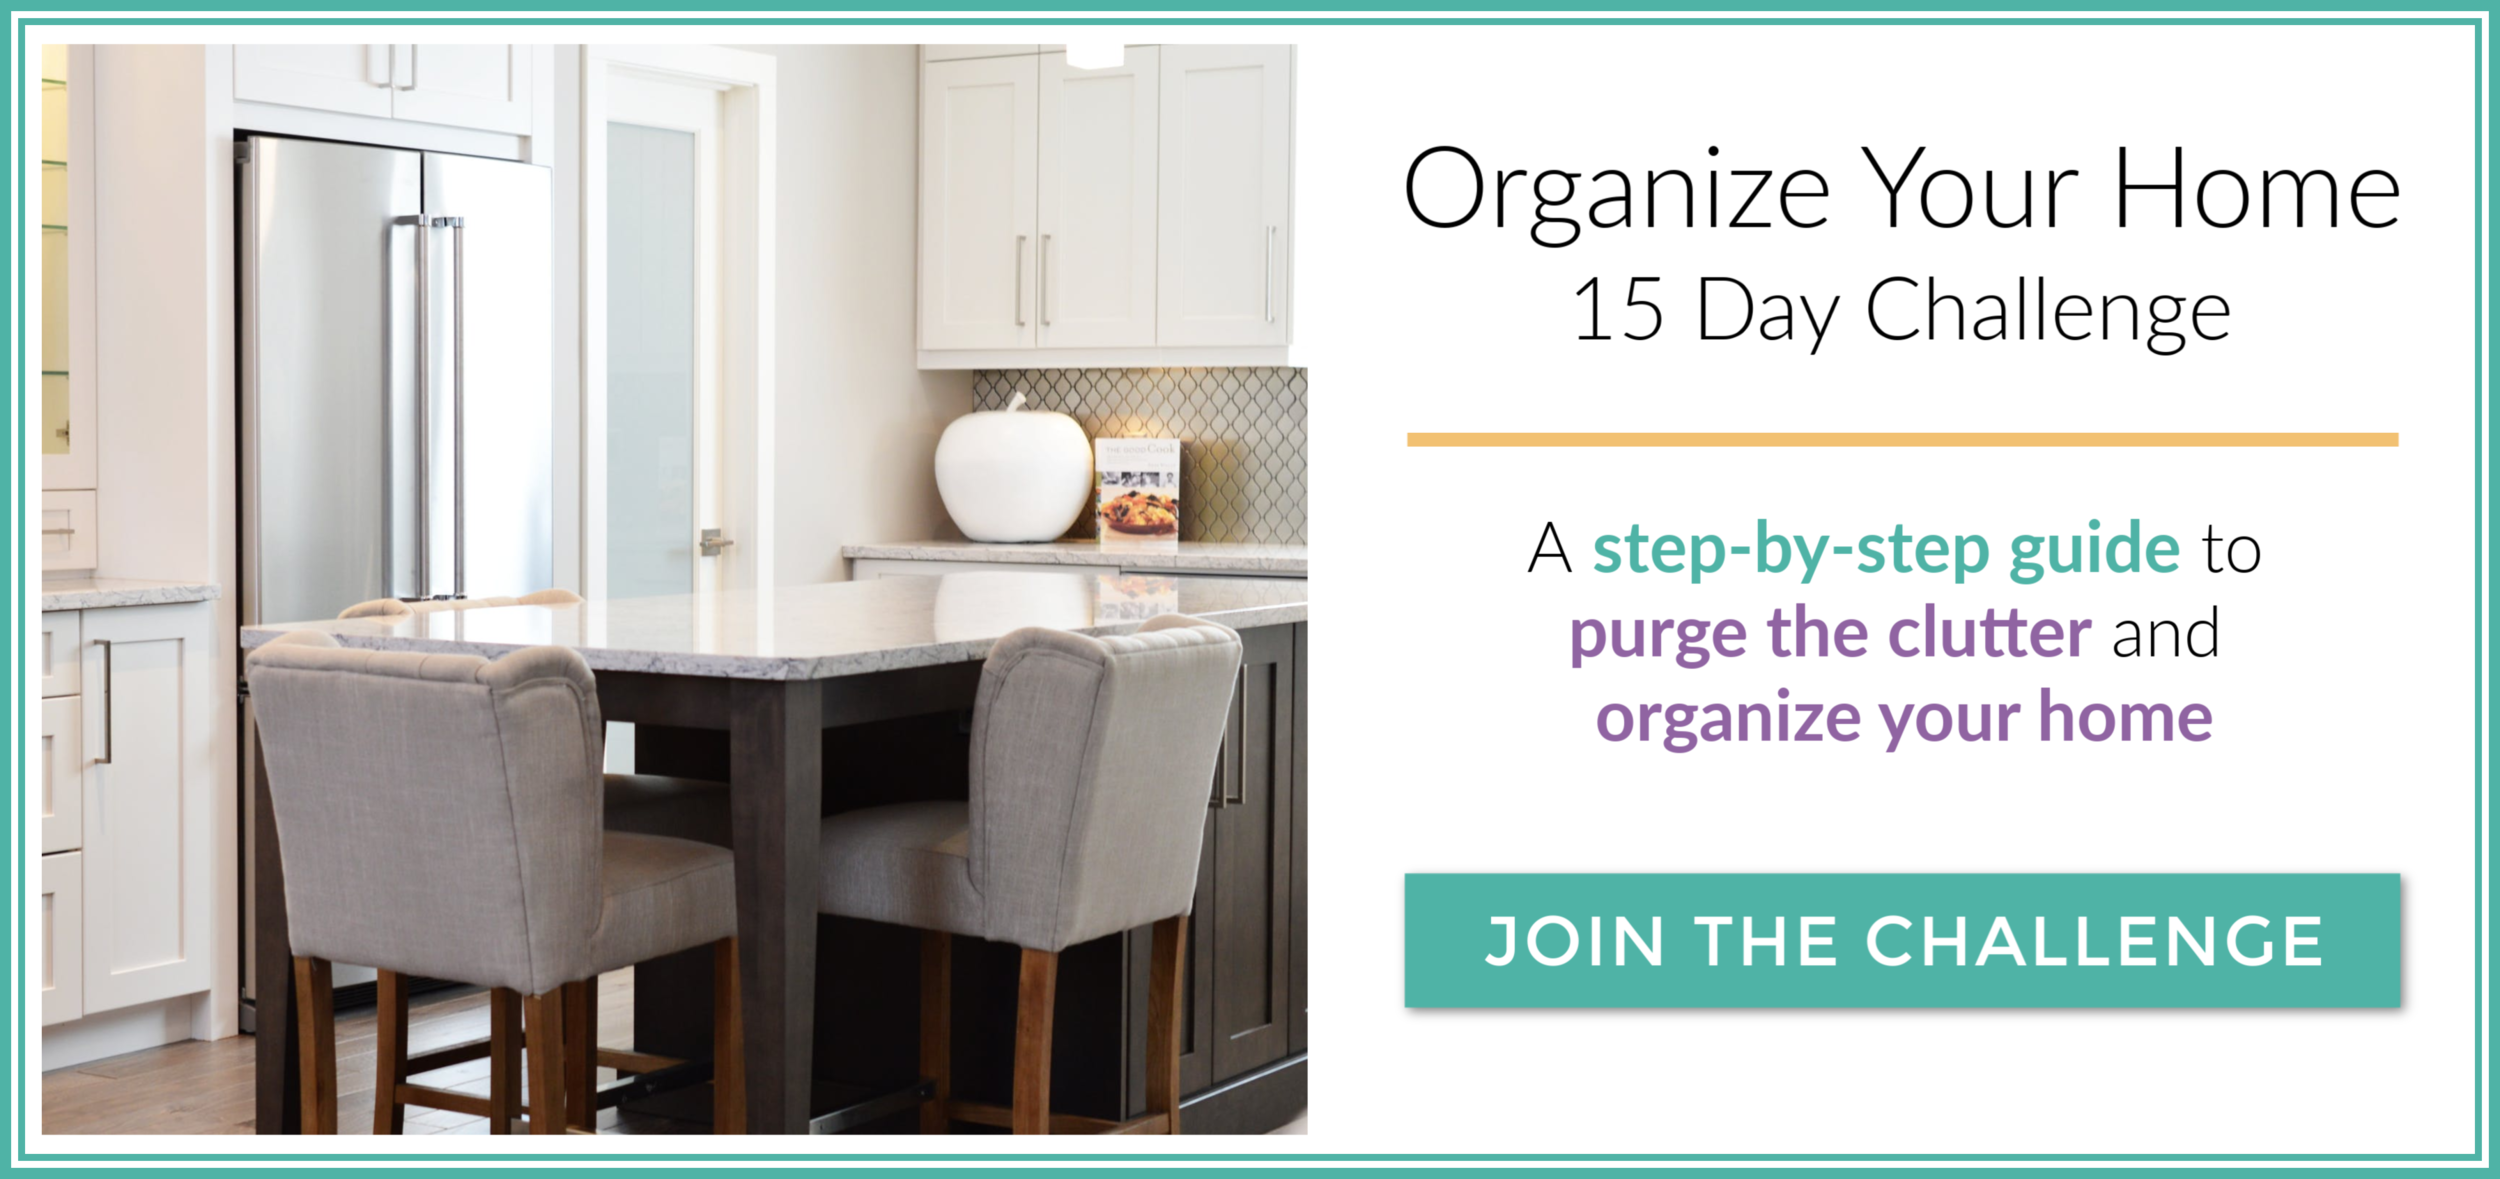 Join the Organize Your Home 15 Day Challenge. A simple step-by-step guide to purge the clutter and organize your home.png